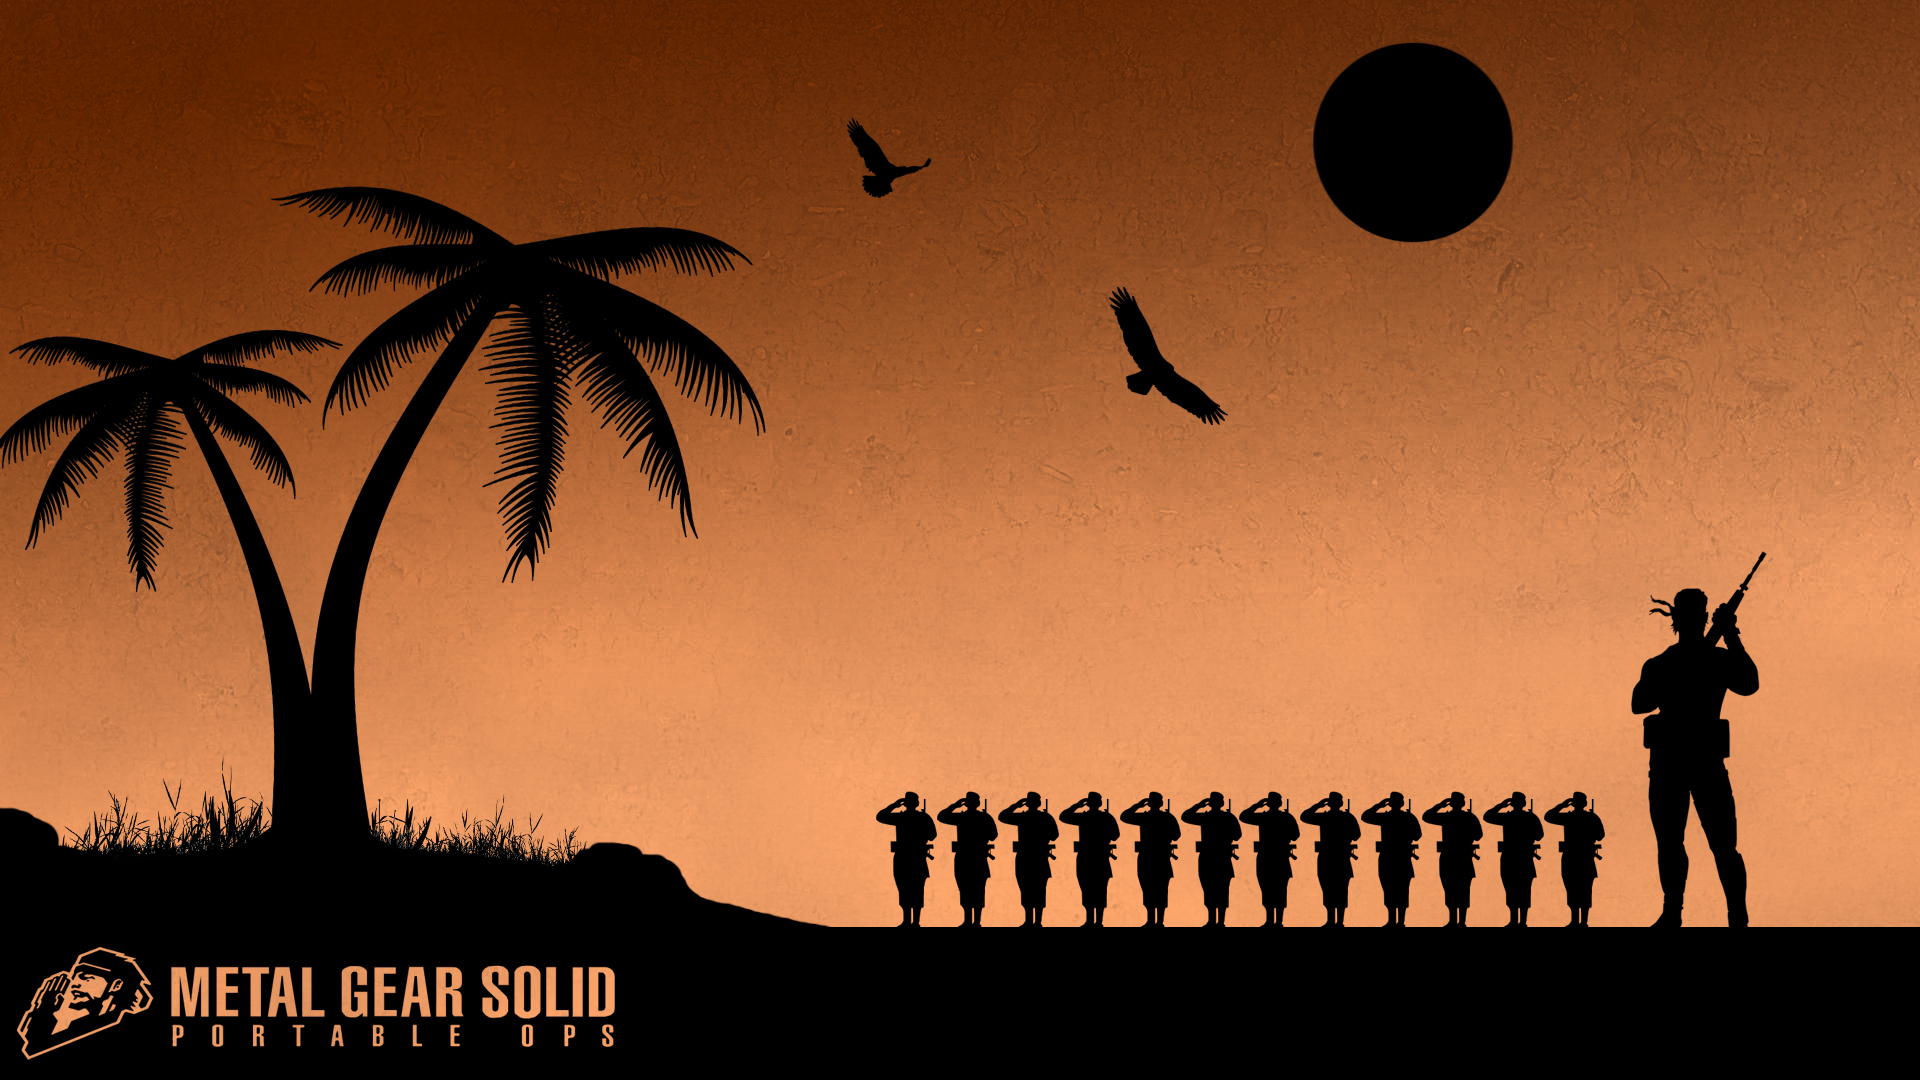 4 metal gear solid portable ops hd wallpapers - Metal gear solid desktop wallpaper ...